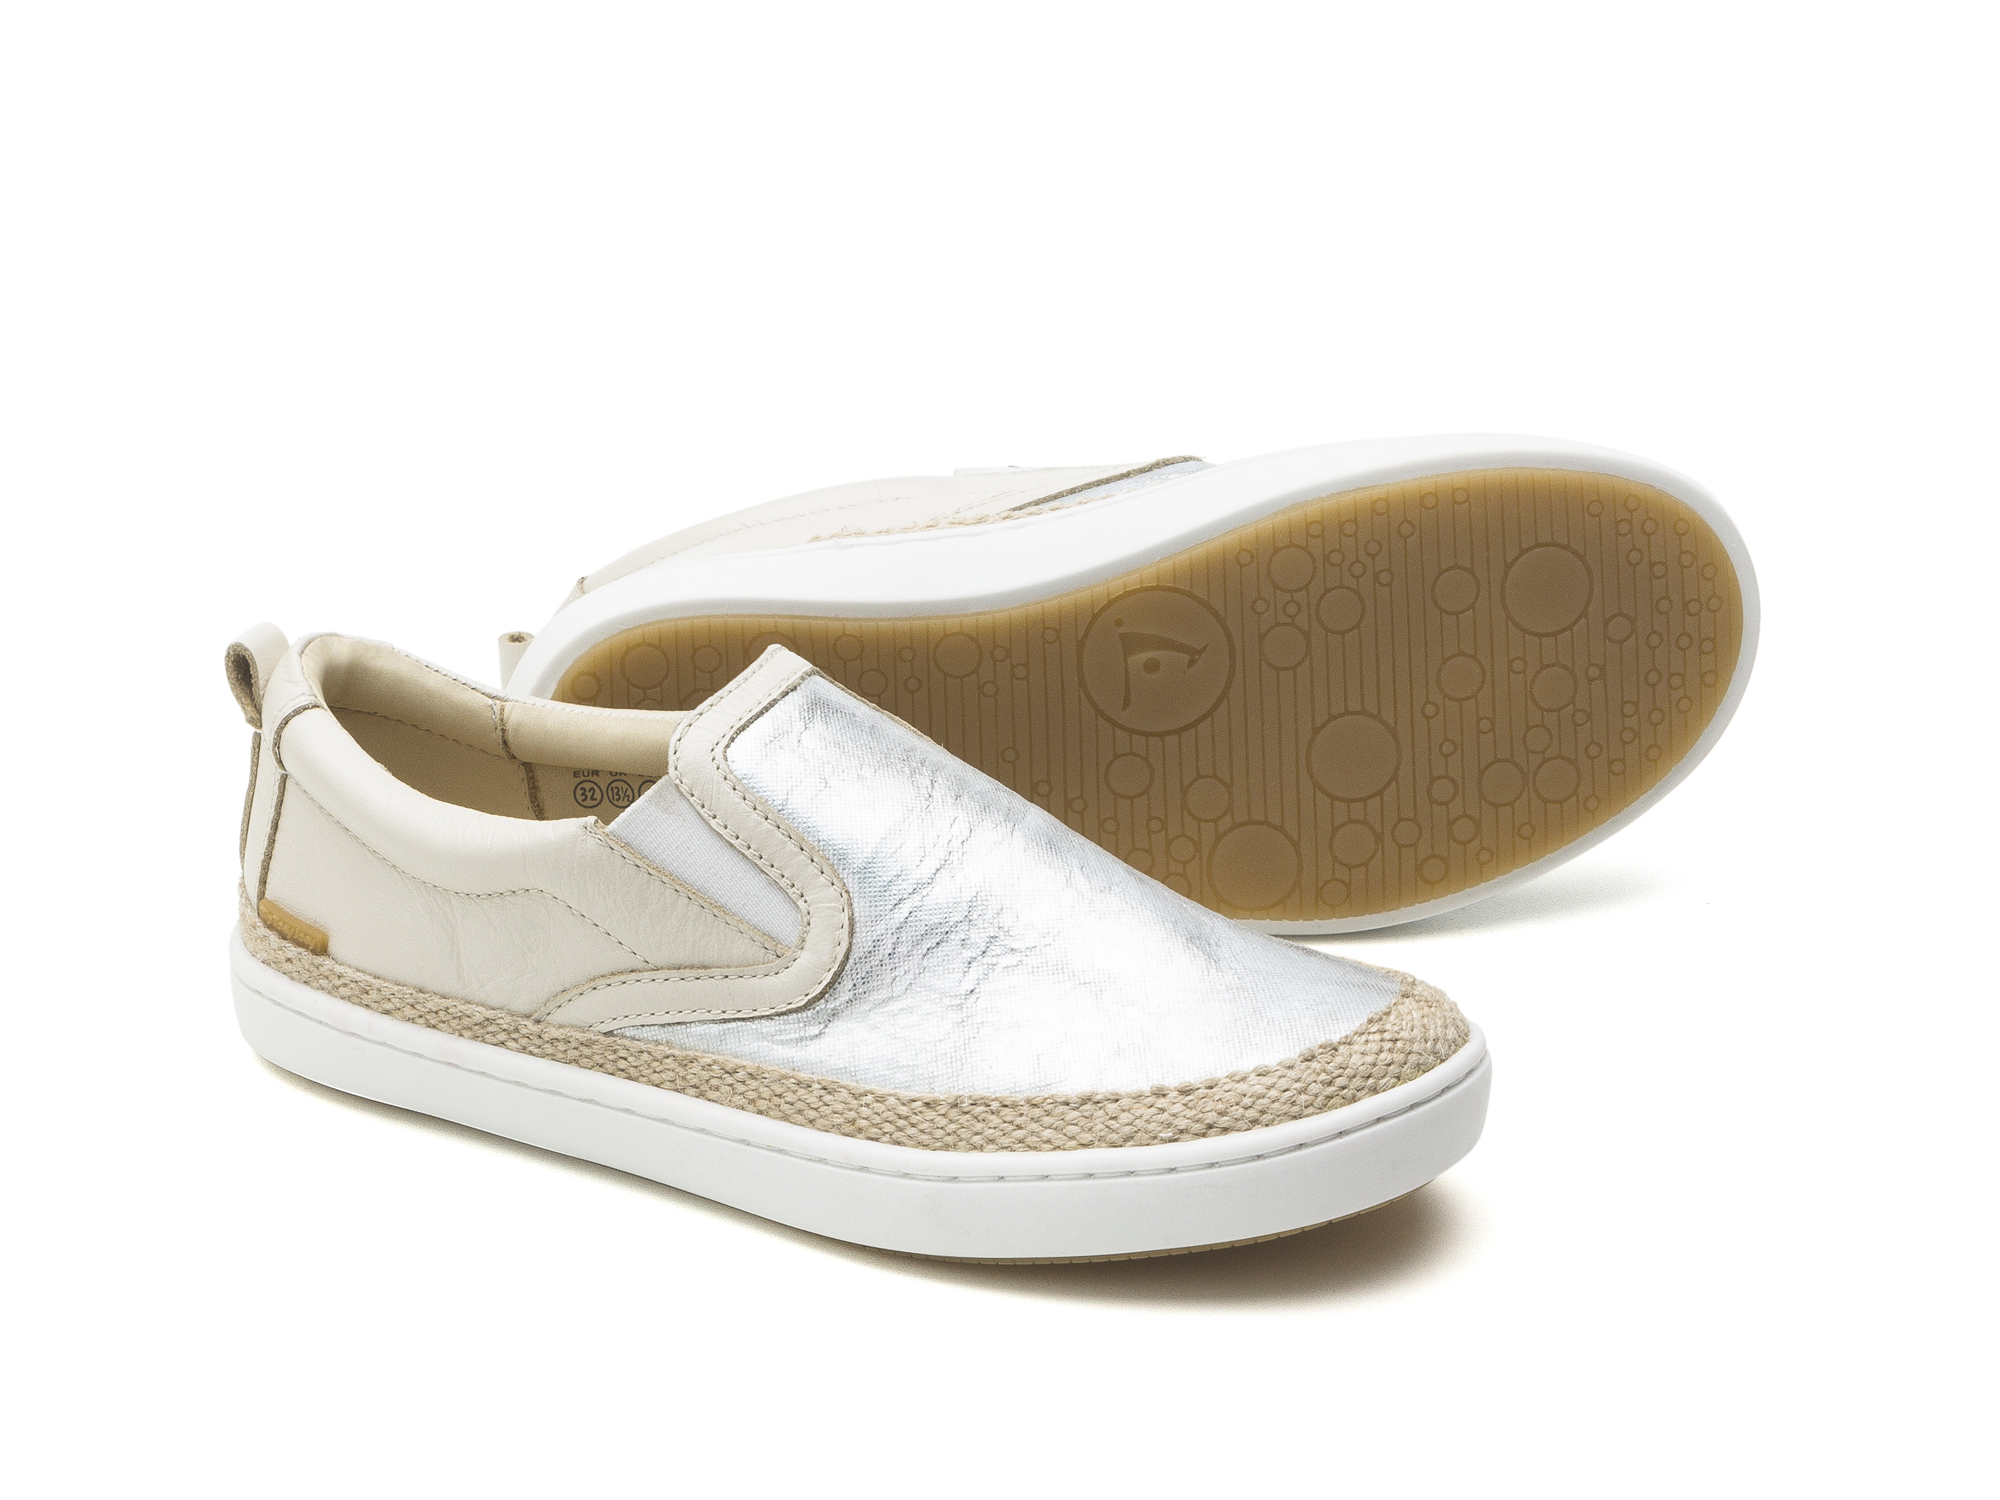 Tênis Straw Sea Sparkle/ Antique White Junior 4 à 8 anos - 1